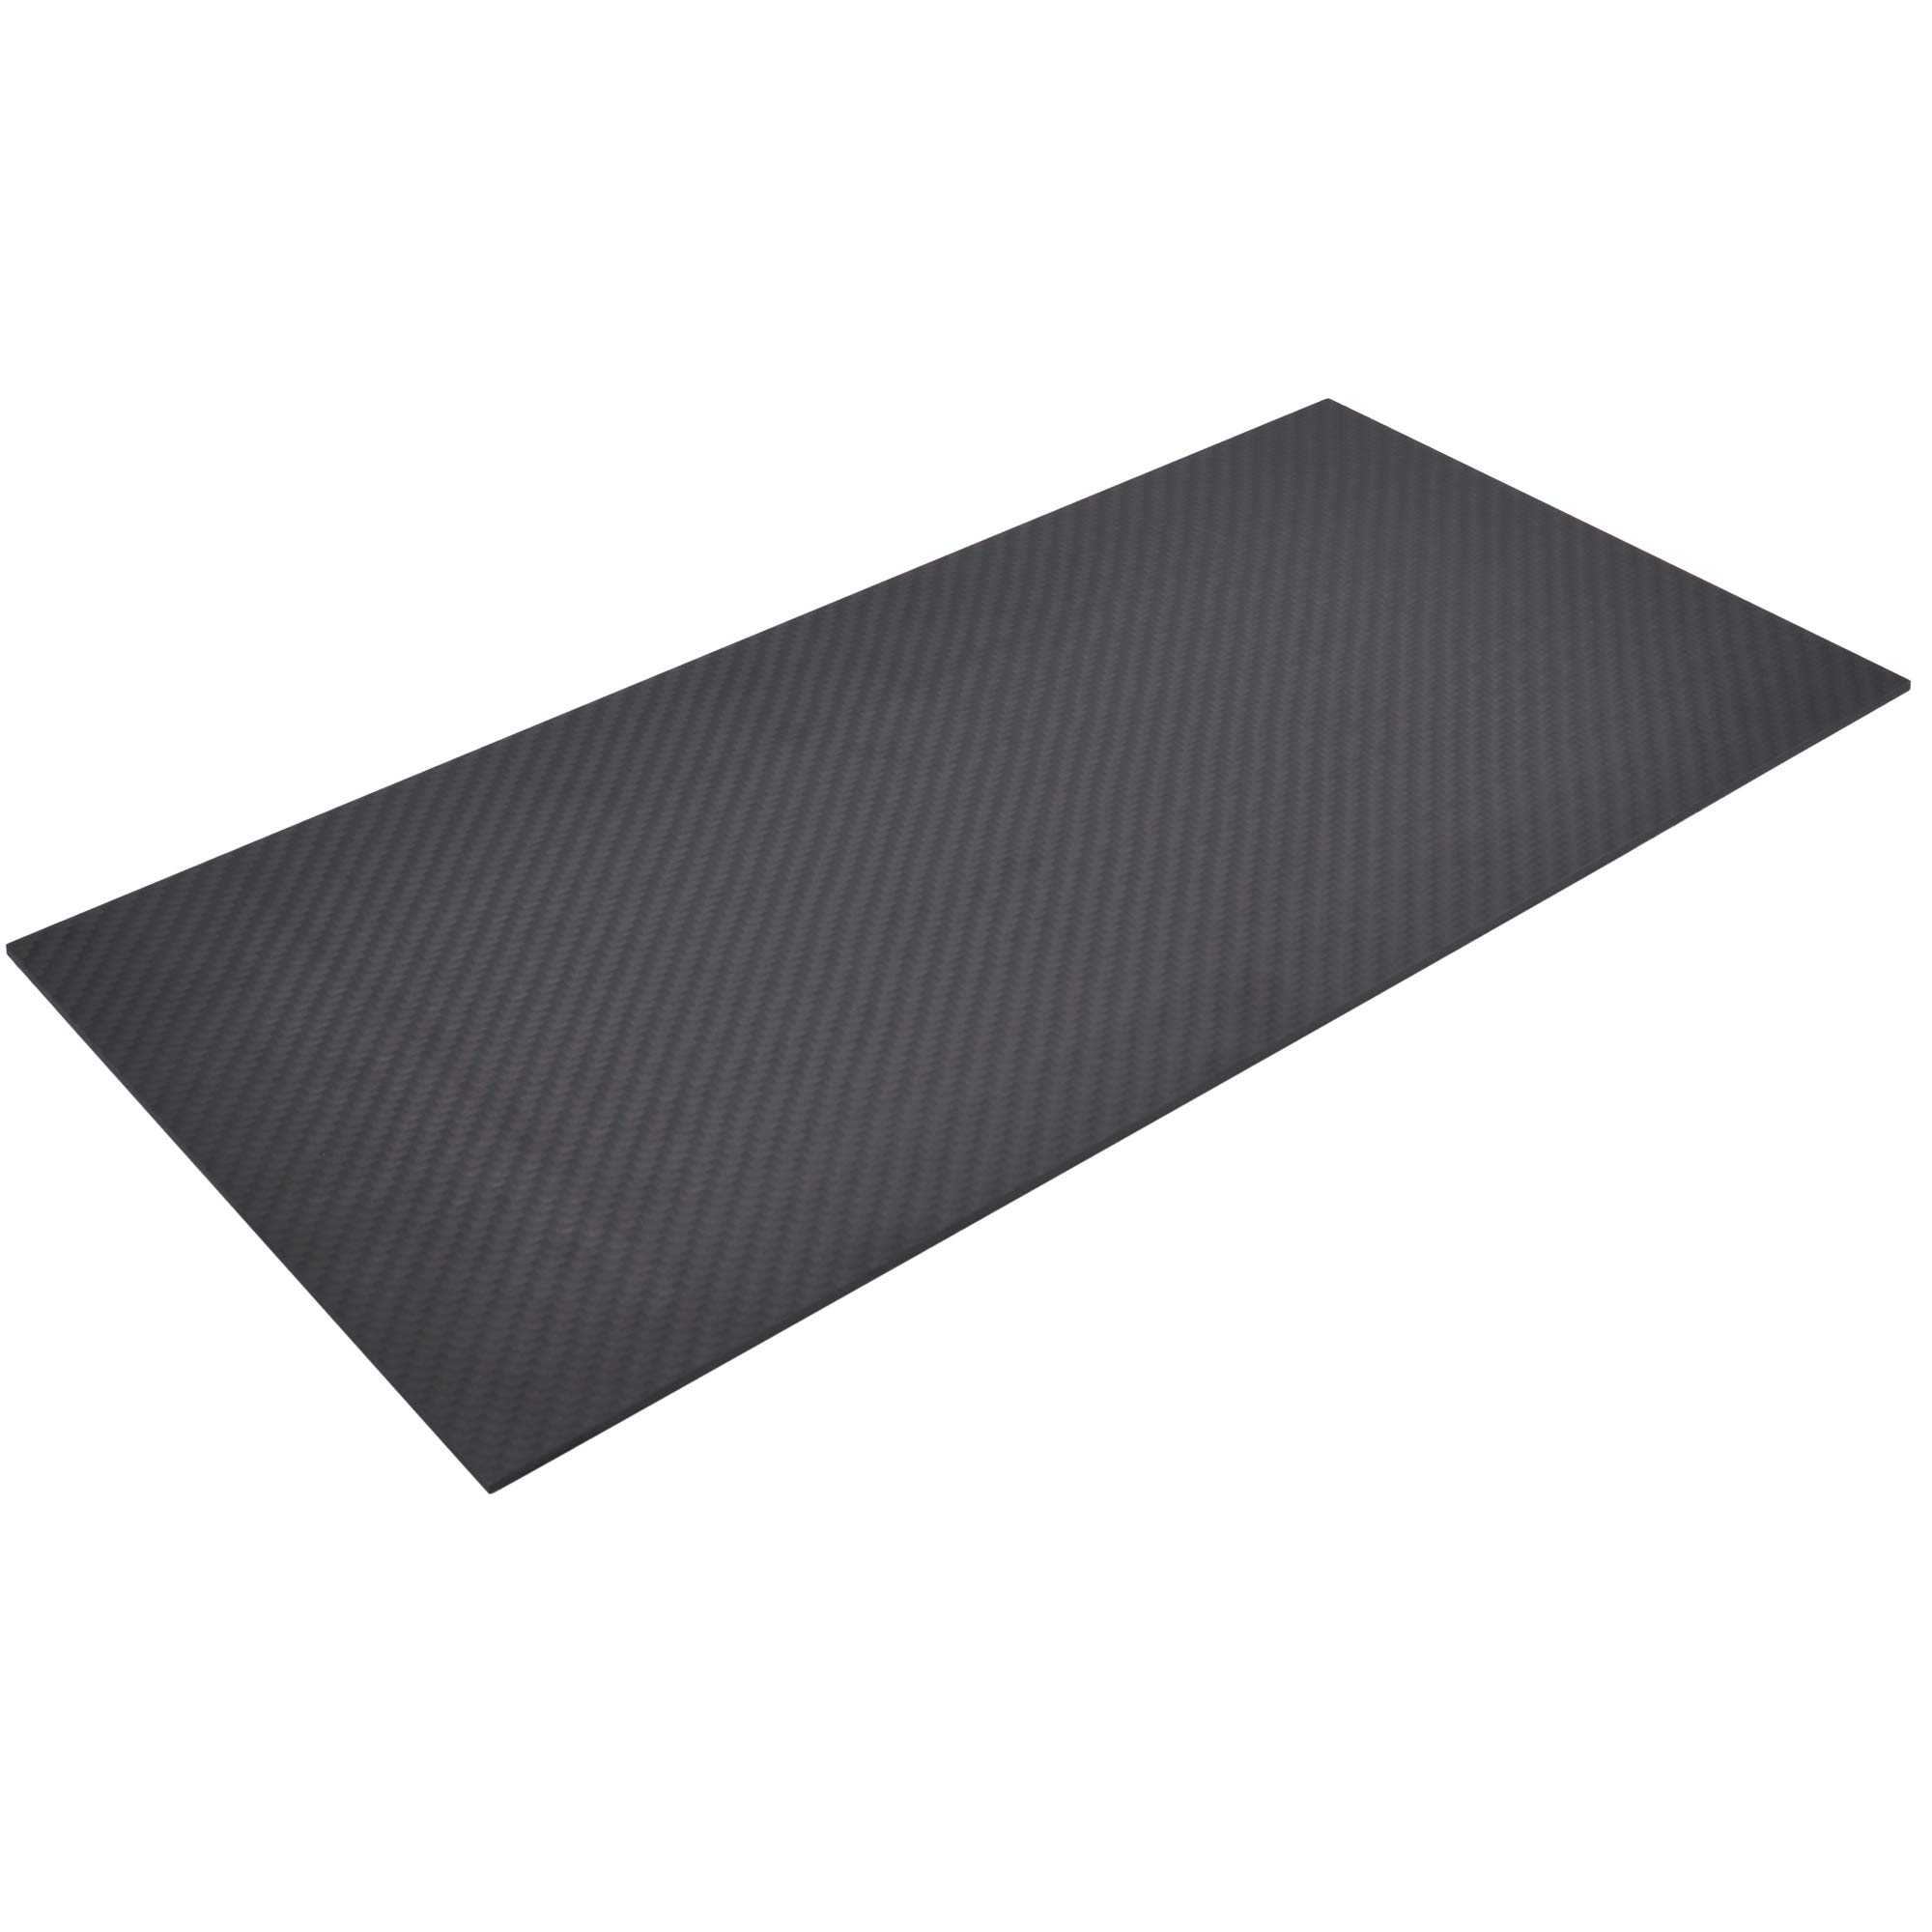 FPVKing 200X400X3mm 3K Full Carbon Fiber Plate Panel Sheets 3mm Thickness High Composite Hardness Material for RC DIY by FPVKing